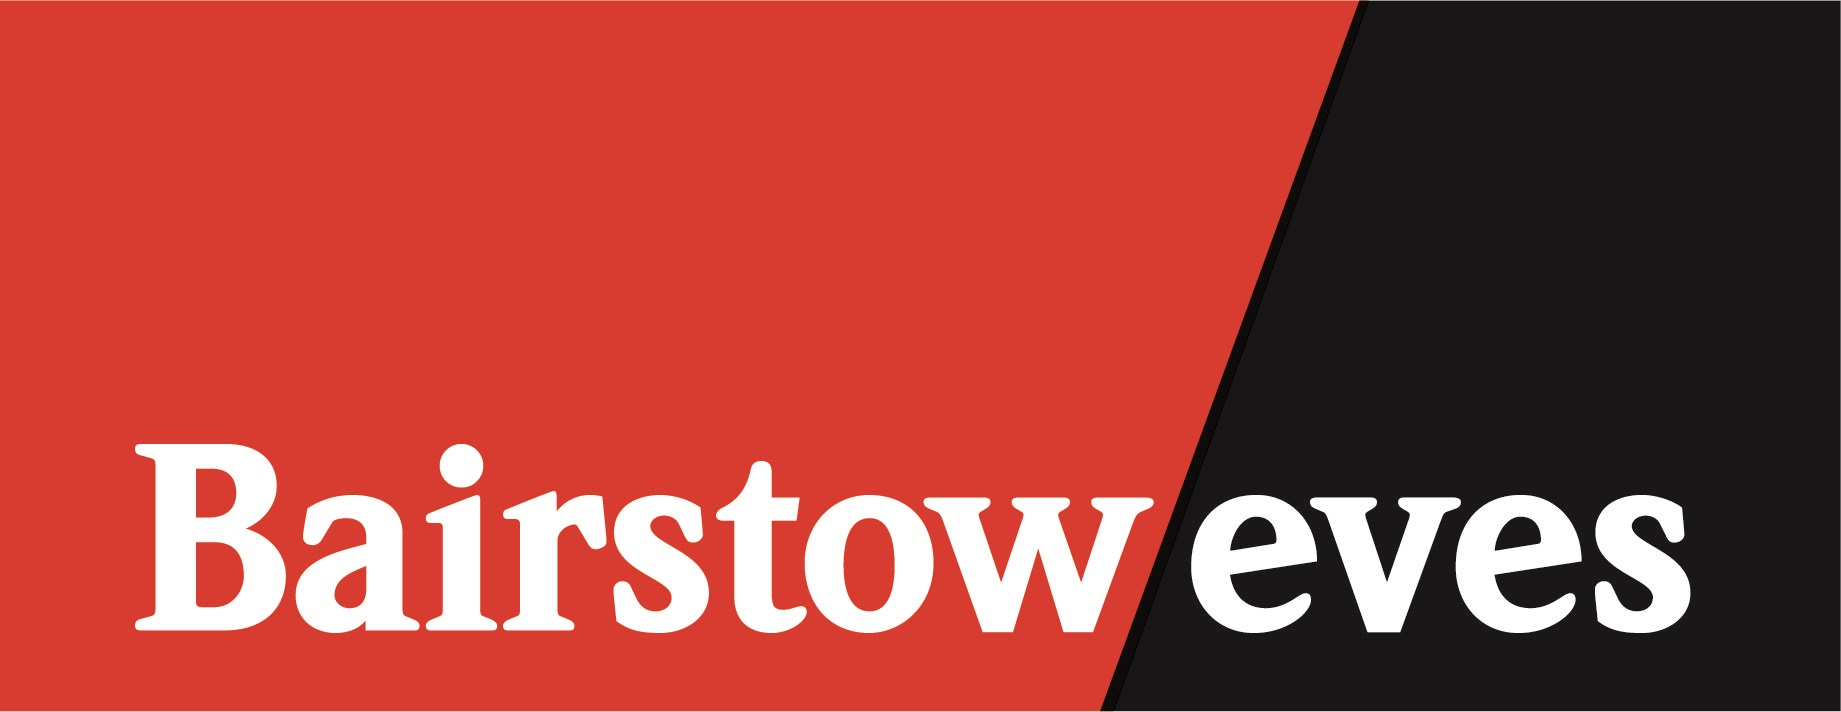 CW - Bairstow Eves - Brentwood